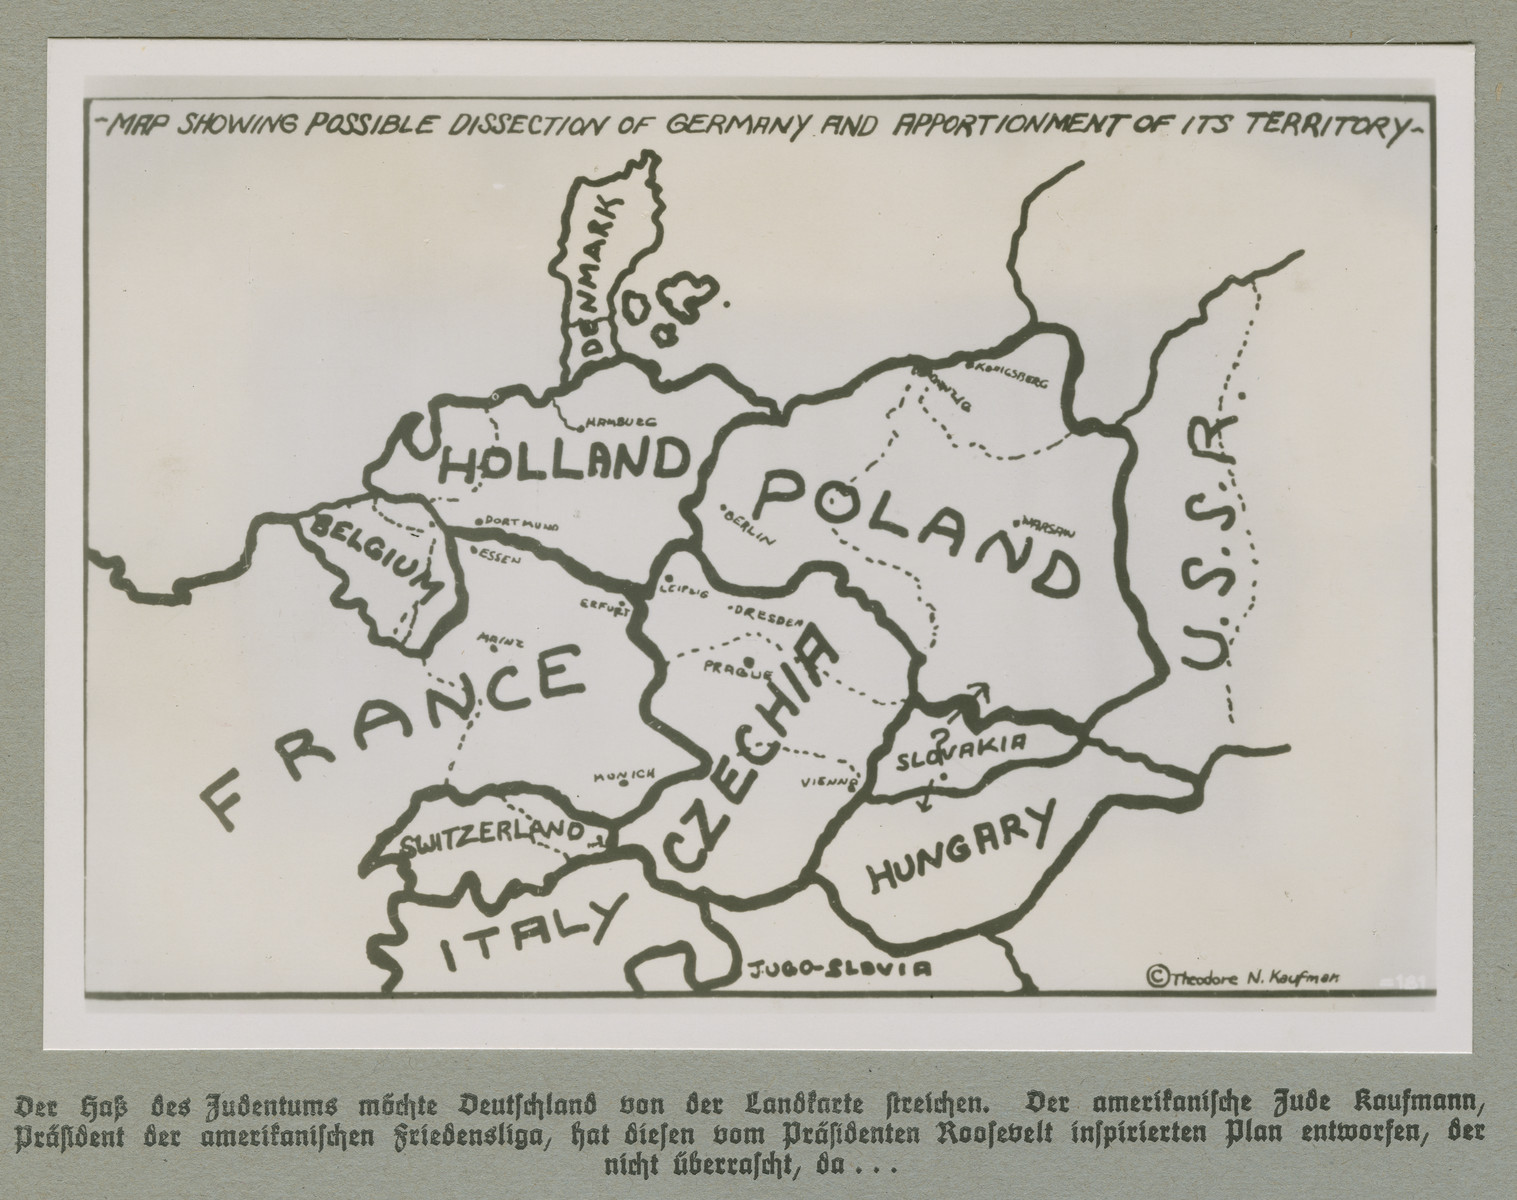 Map showing a plan to redistribute German territory.  Original caption reads: Jewish hatred wants to strike Germany from the map. The American Jew Kaufmann, president of the American Federation of Peace, drafted this plan inspired by President Roosevelt, which does not come as a surprise as...